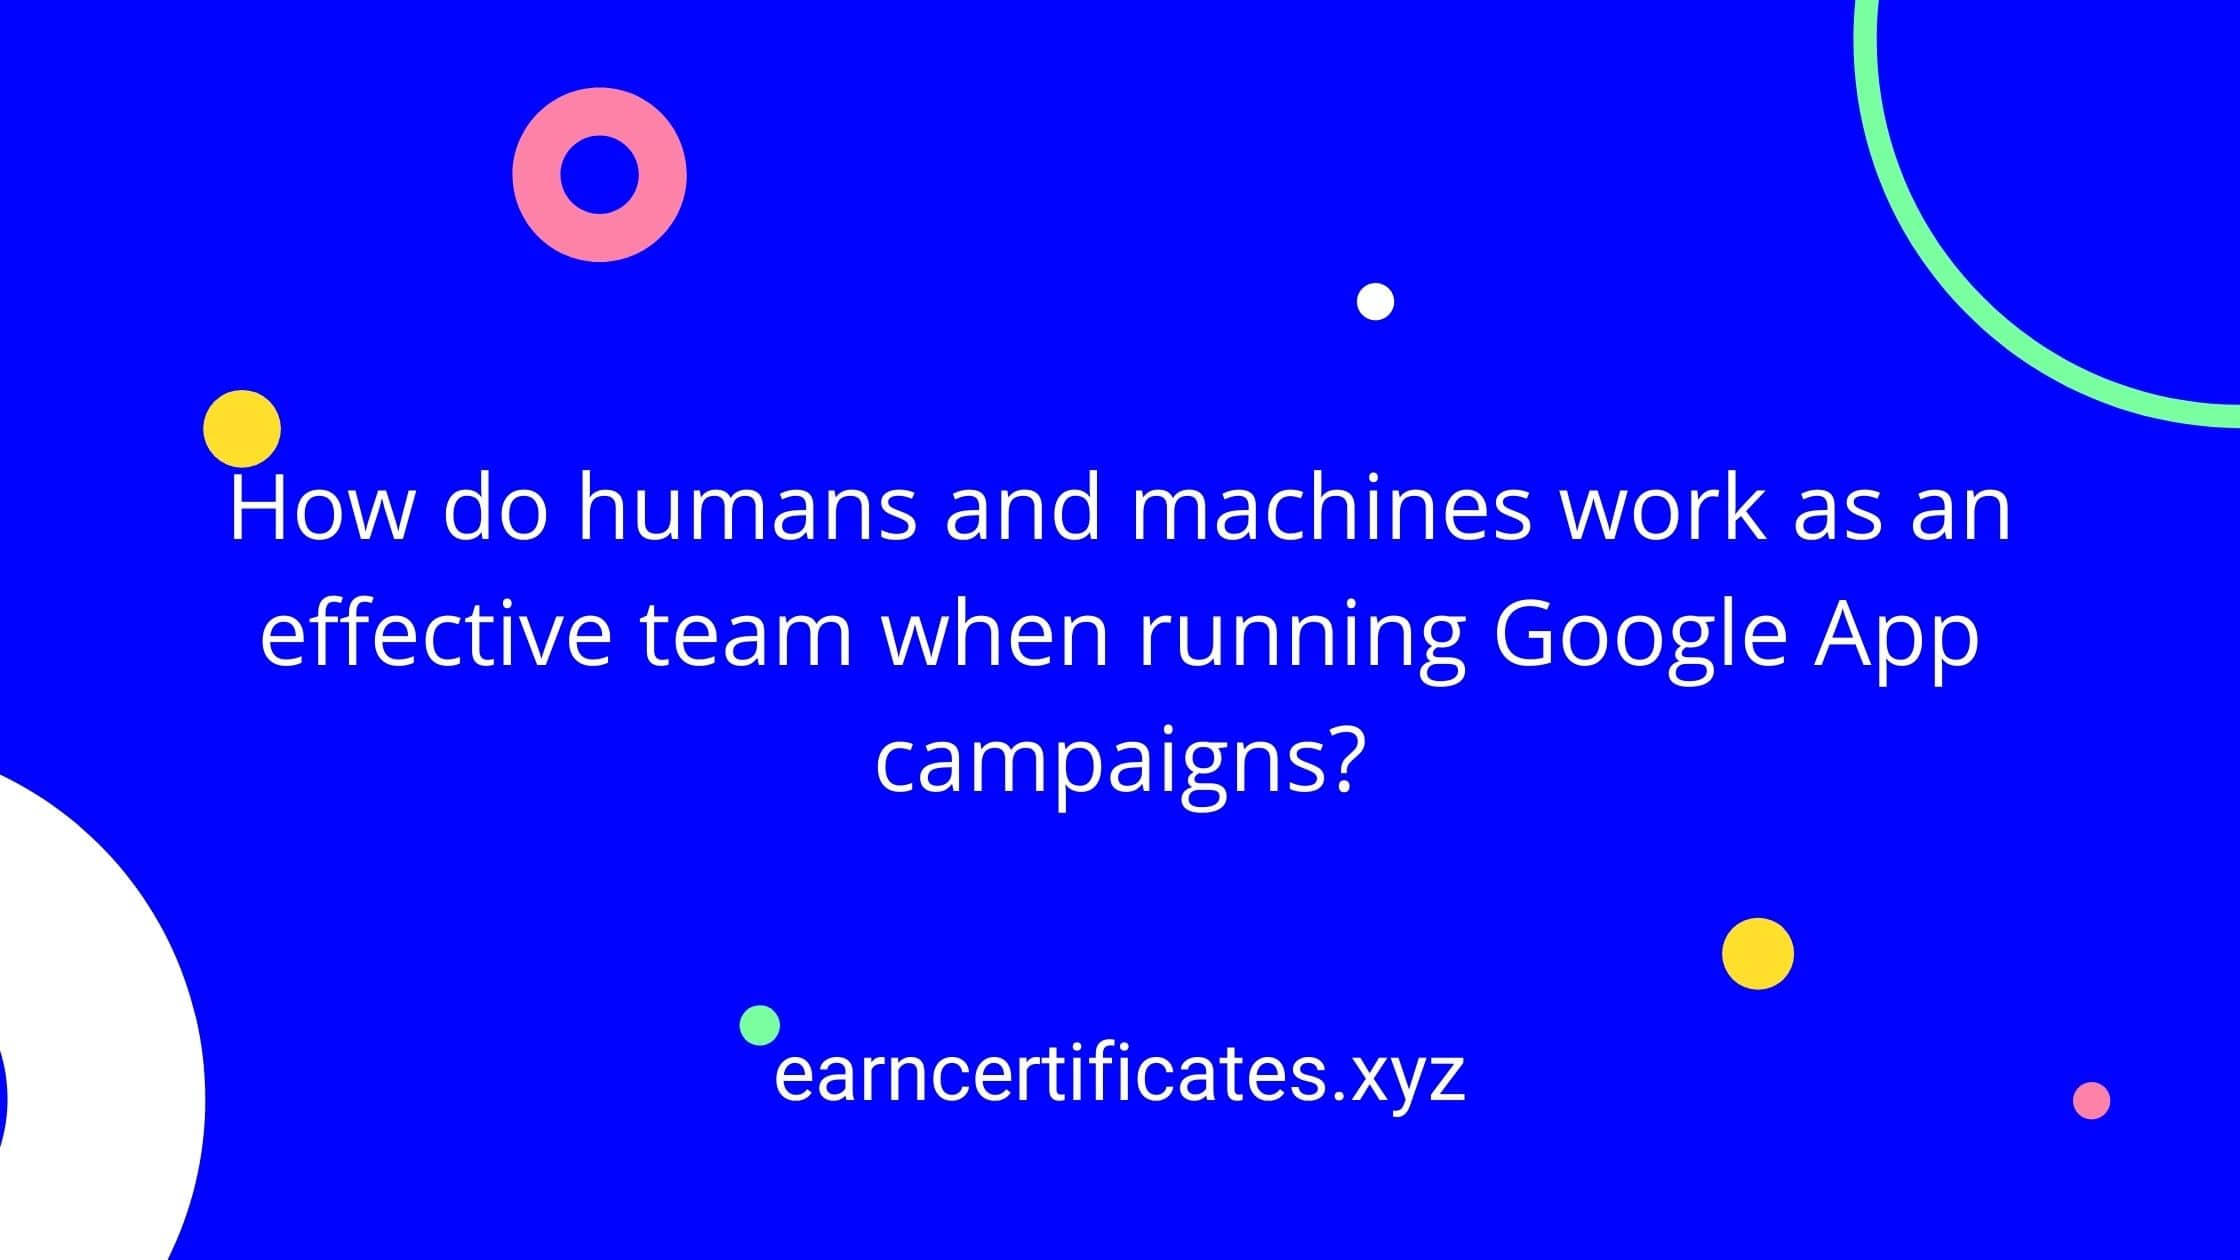 How do humans and machines work as an effective team when running Google App campaigns?